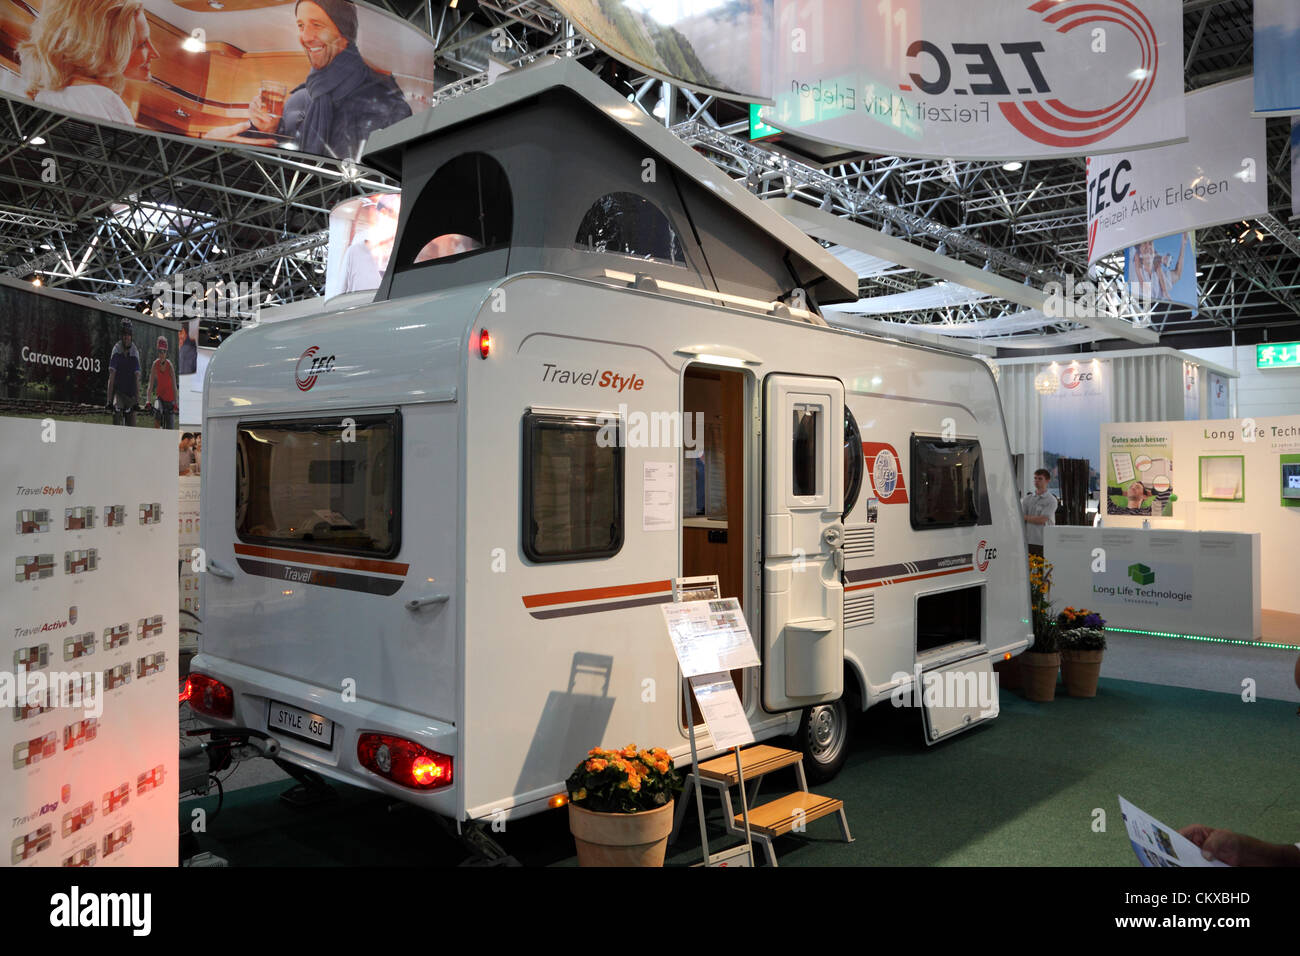 Fashion For Home Düsseldorf Duesseldorf - August 27: T.e.c. Travel Style Mobile Home ...